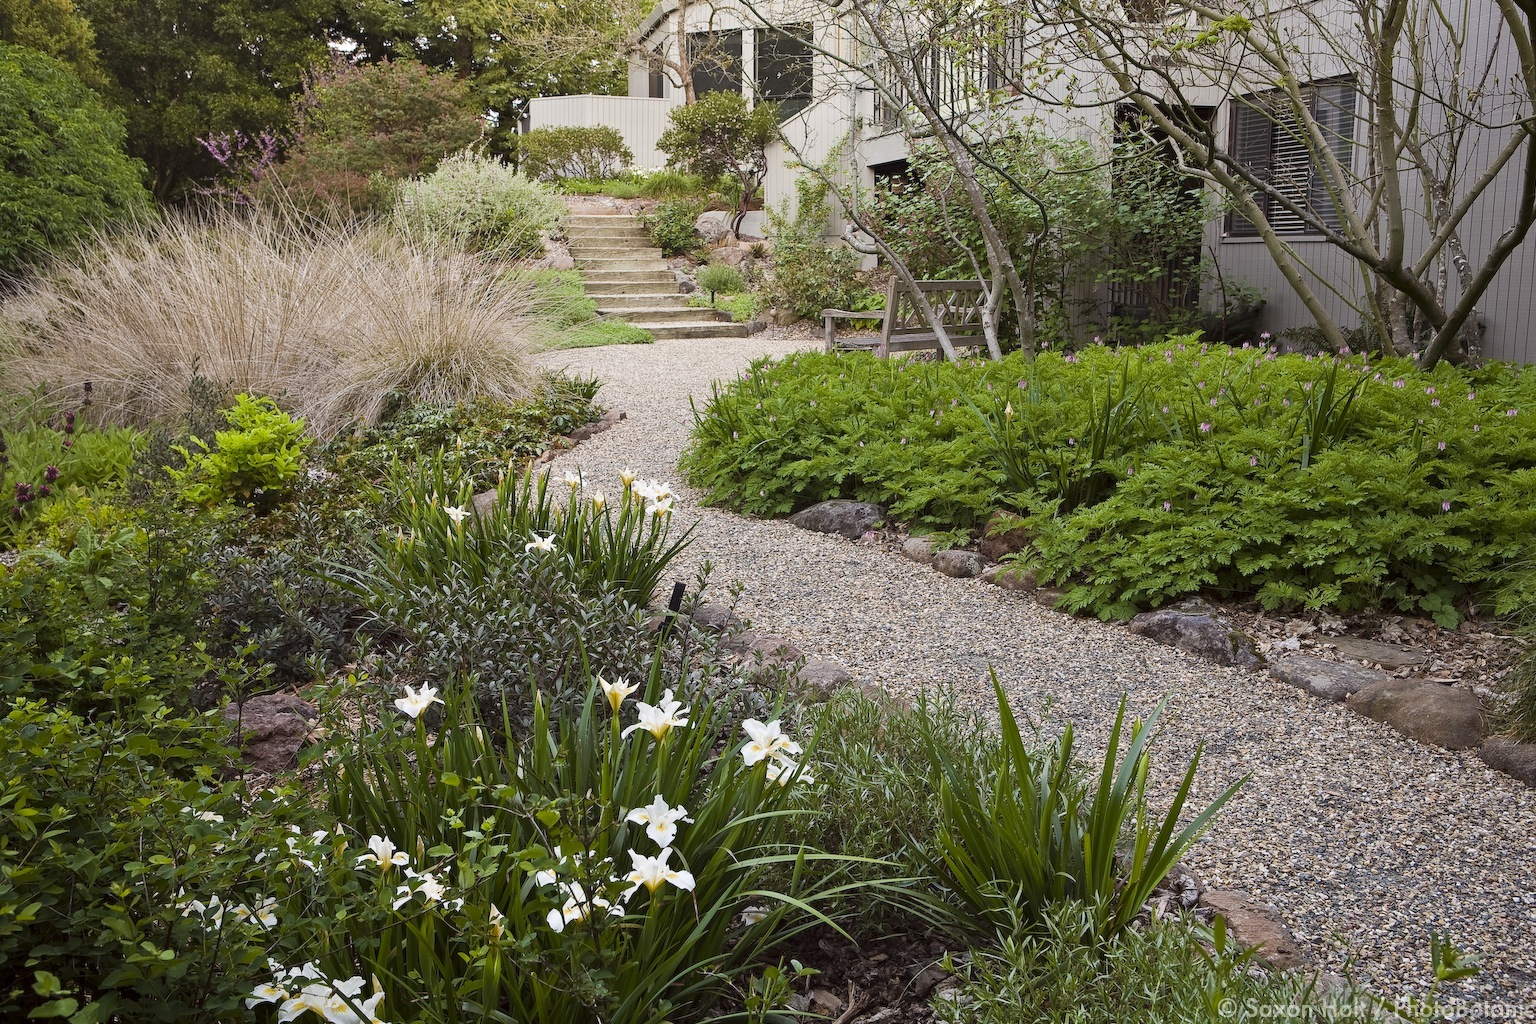 Native plant gardens can have design and structure